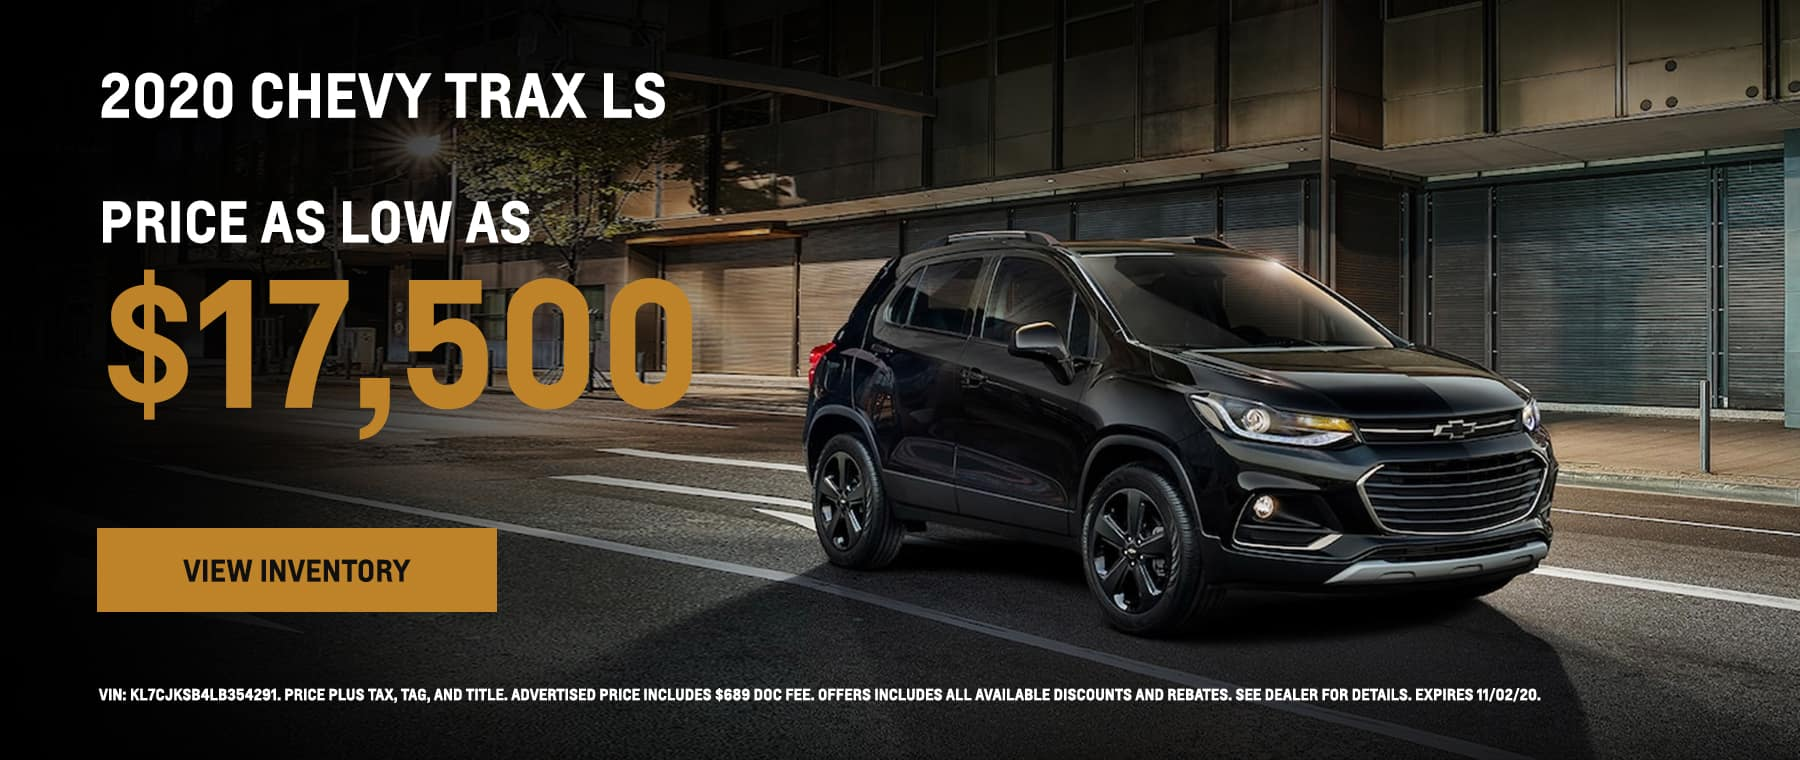 2020 Chevy Trax priced as low as $17,500